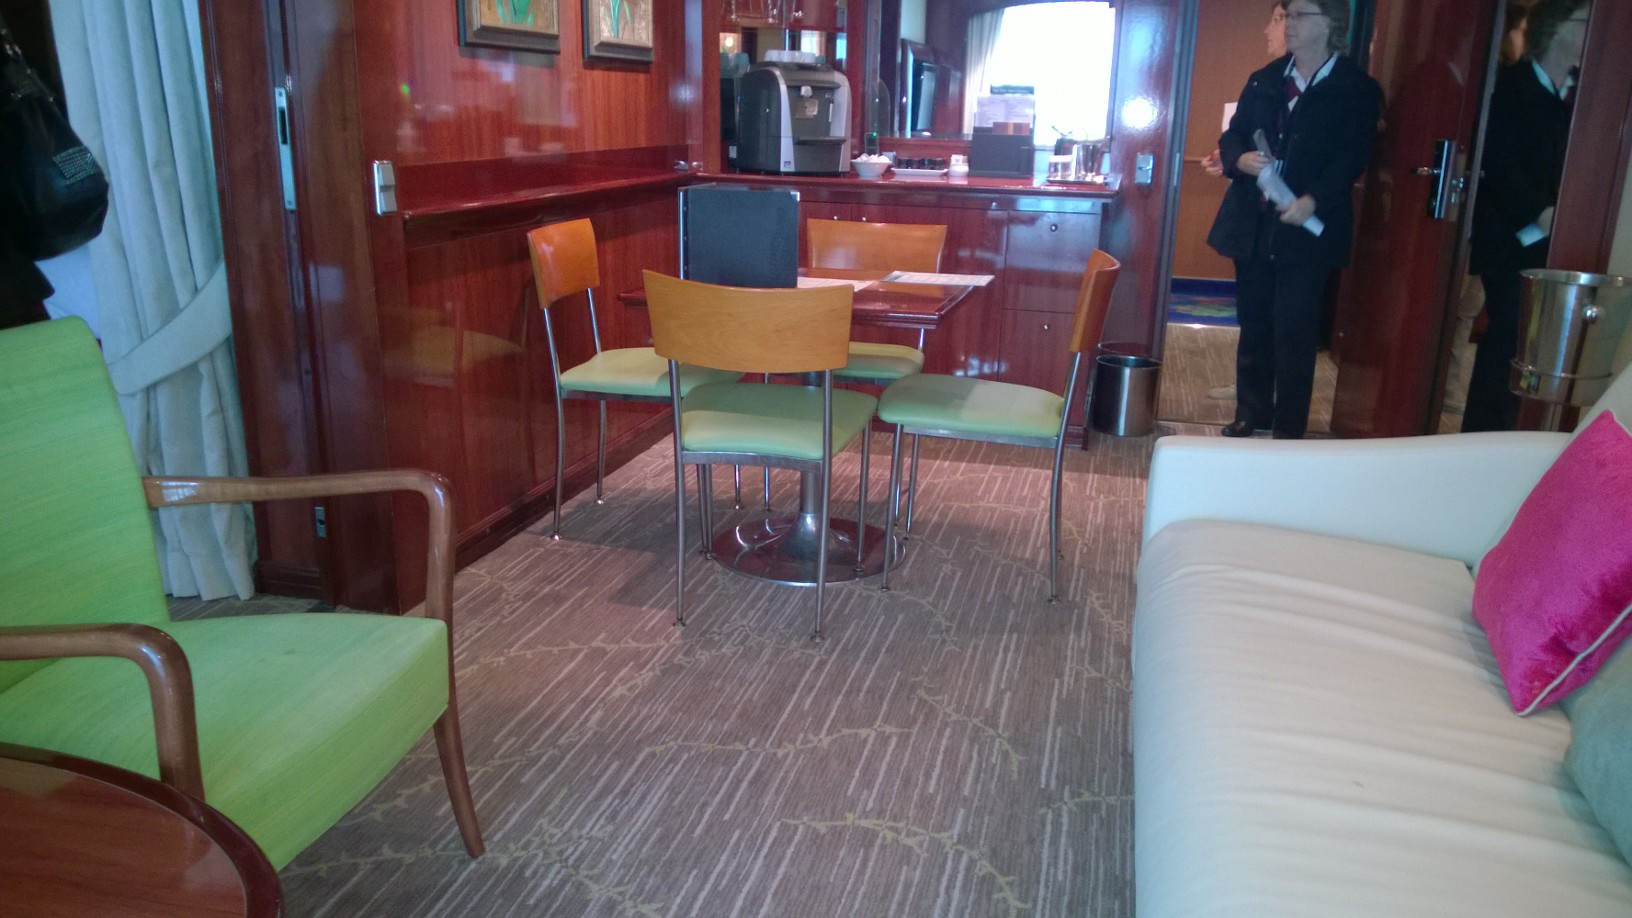 grs hardwood flooring distribution of tourwick travel norwegian jewel within 1 wp 20141115 030